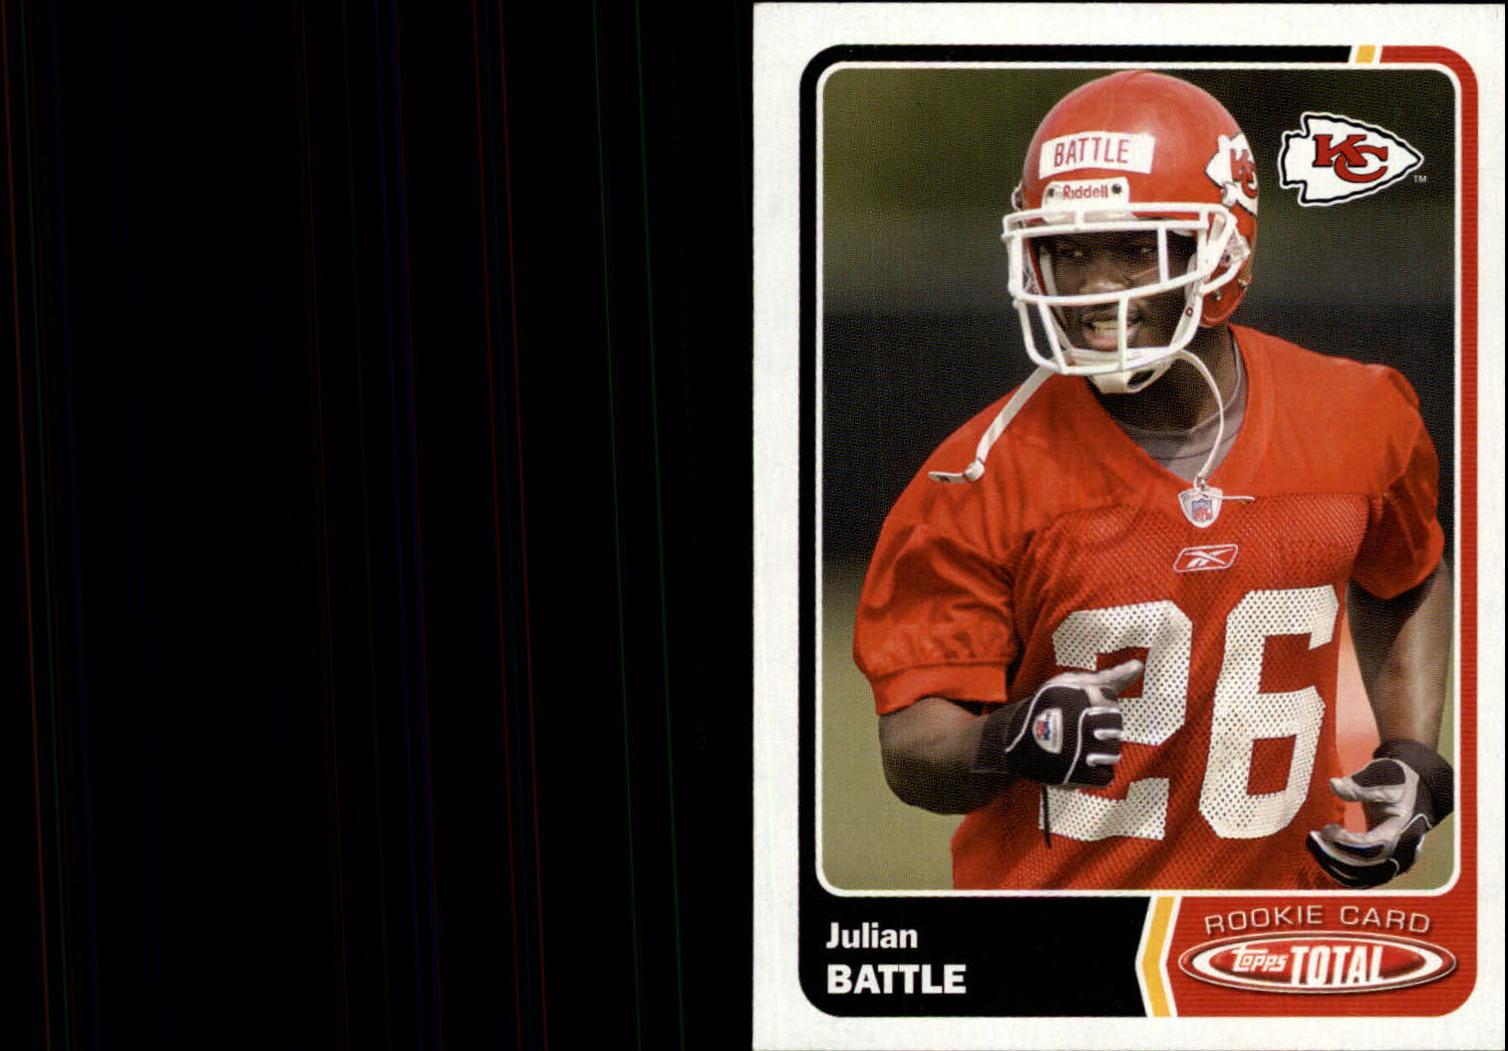 2003 Topps Total #483 Julian Battle RC front image